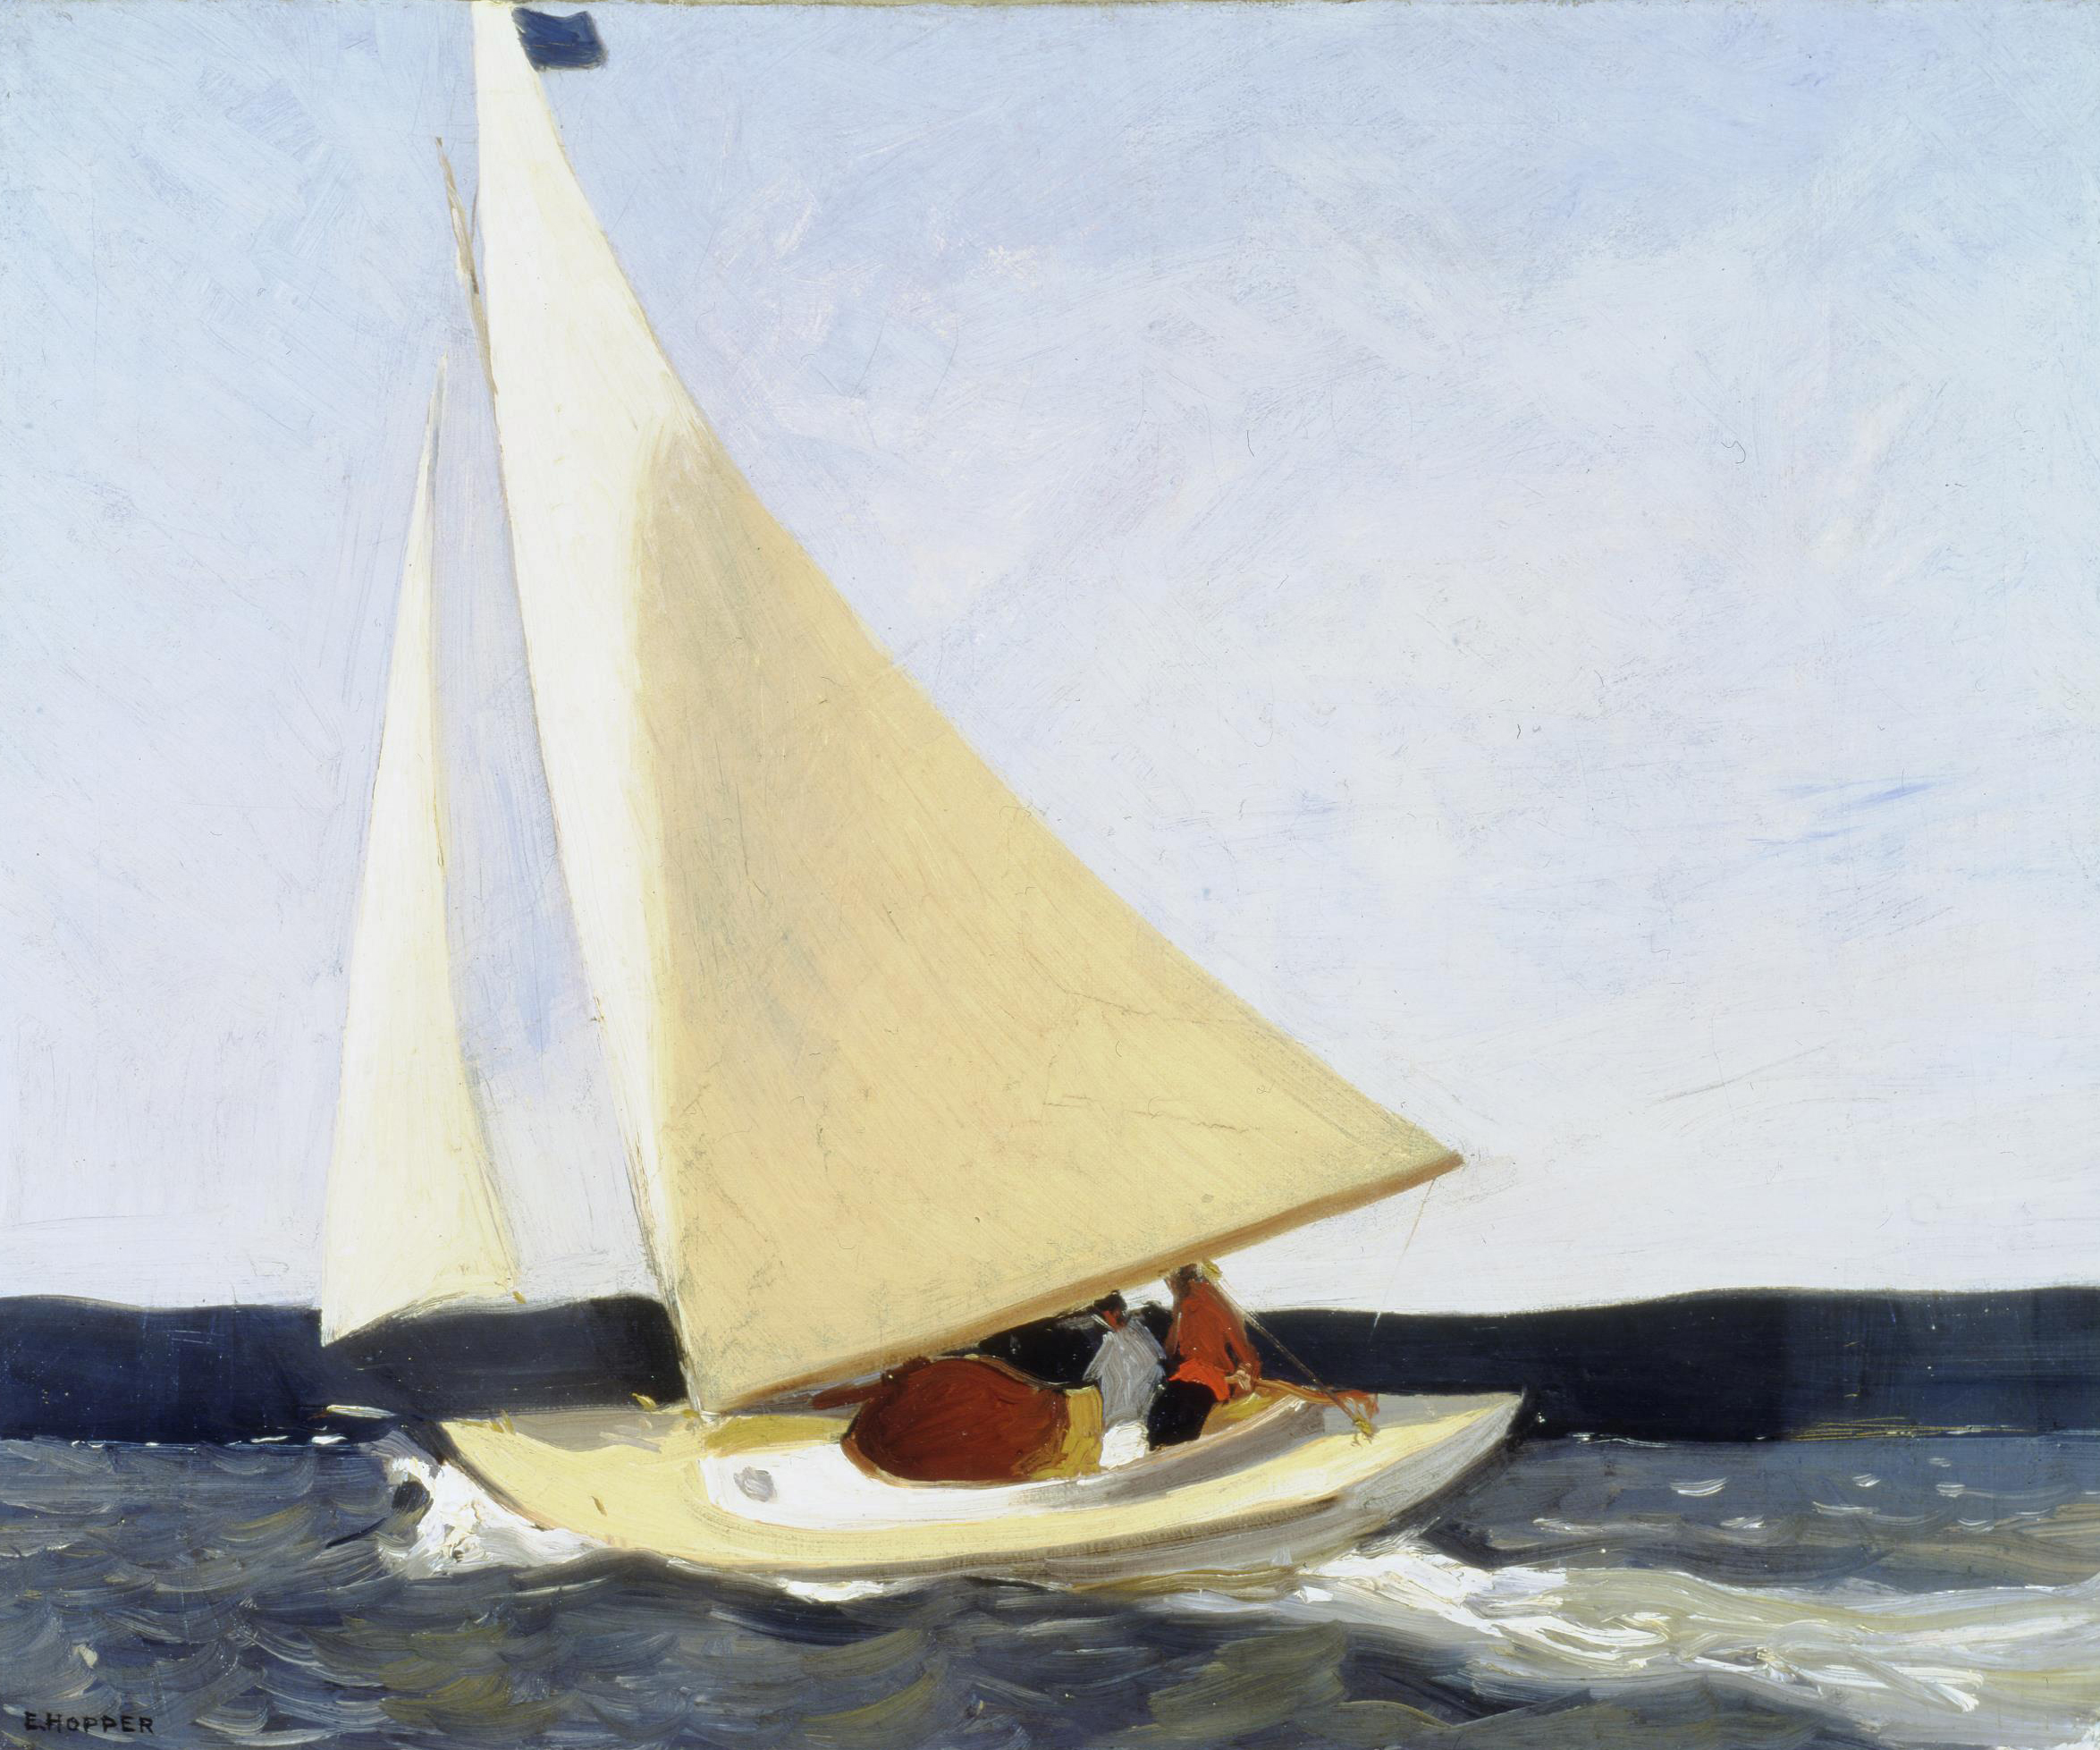 Edward Hopper, 'Sailing,' 1911, oil on canvas; gift of Mr. and Mrs. James H. Beal in honor of the Sarah Scaife Gallery. Courtesy of Carnegie Museum of Art